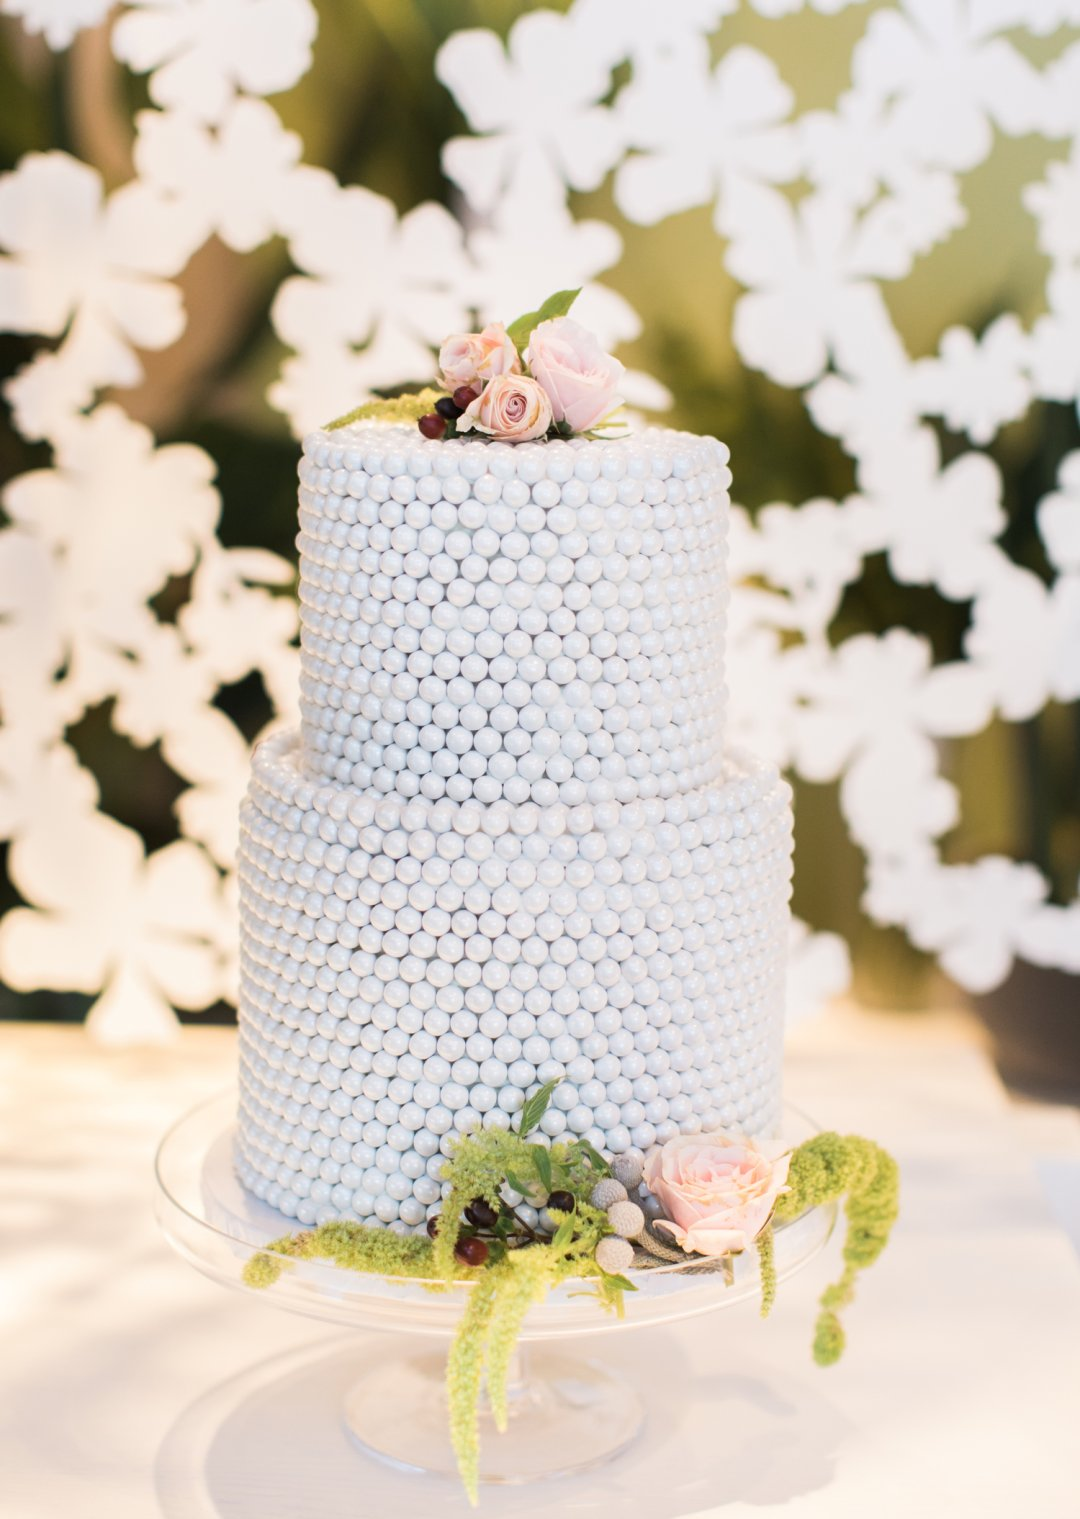 White beaded wedding cake on display